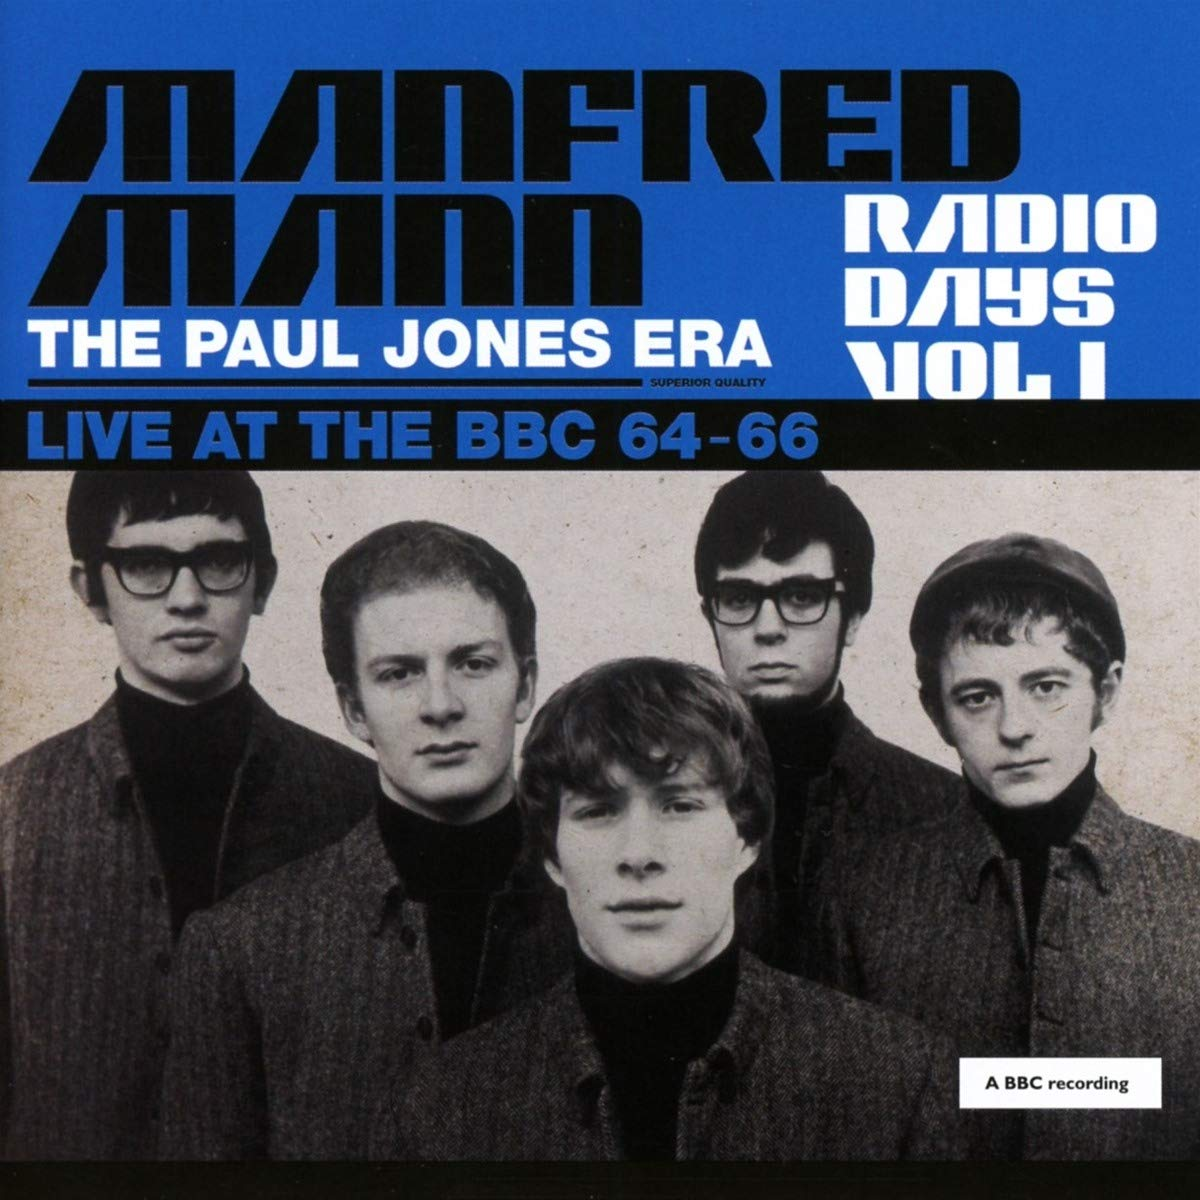 Manfred Mann Radio Days Vol 1 (The Paul Jones Era)